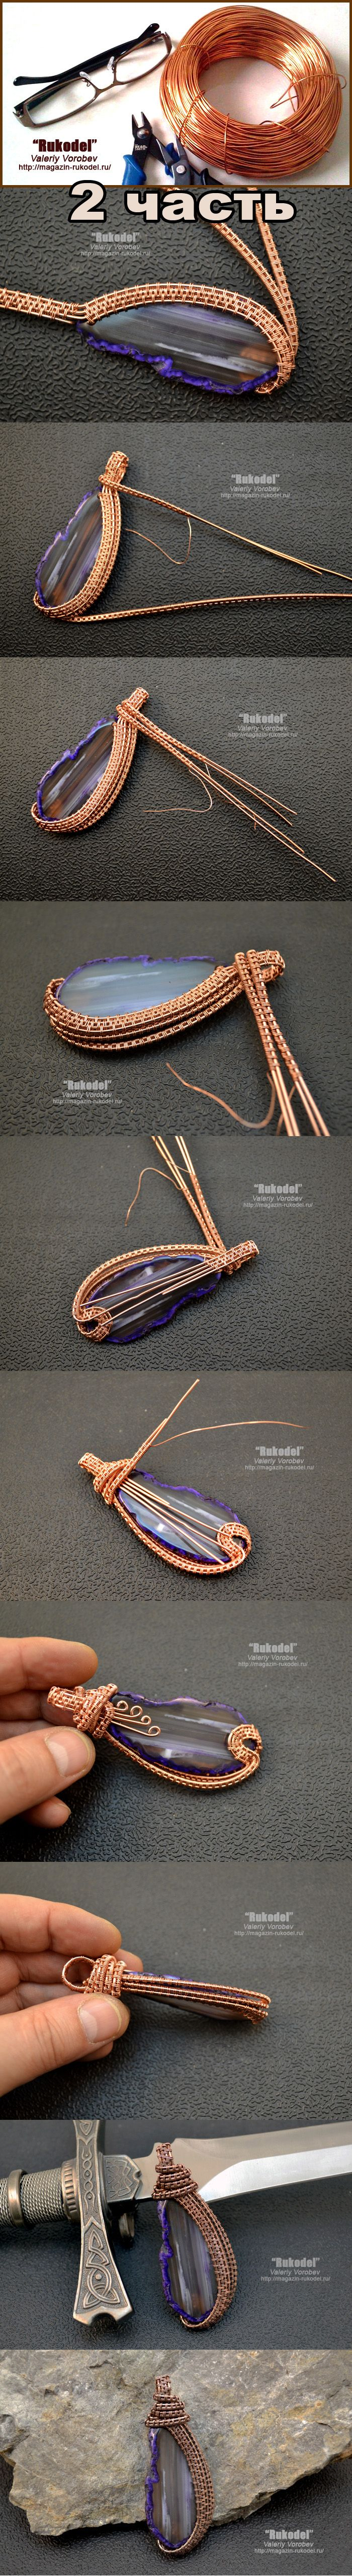 2821 best images about Wire Necklace on Pinterest | Wire necklace ...